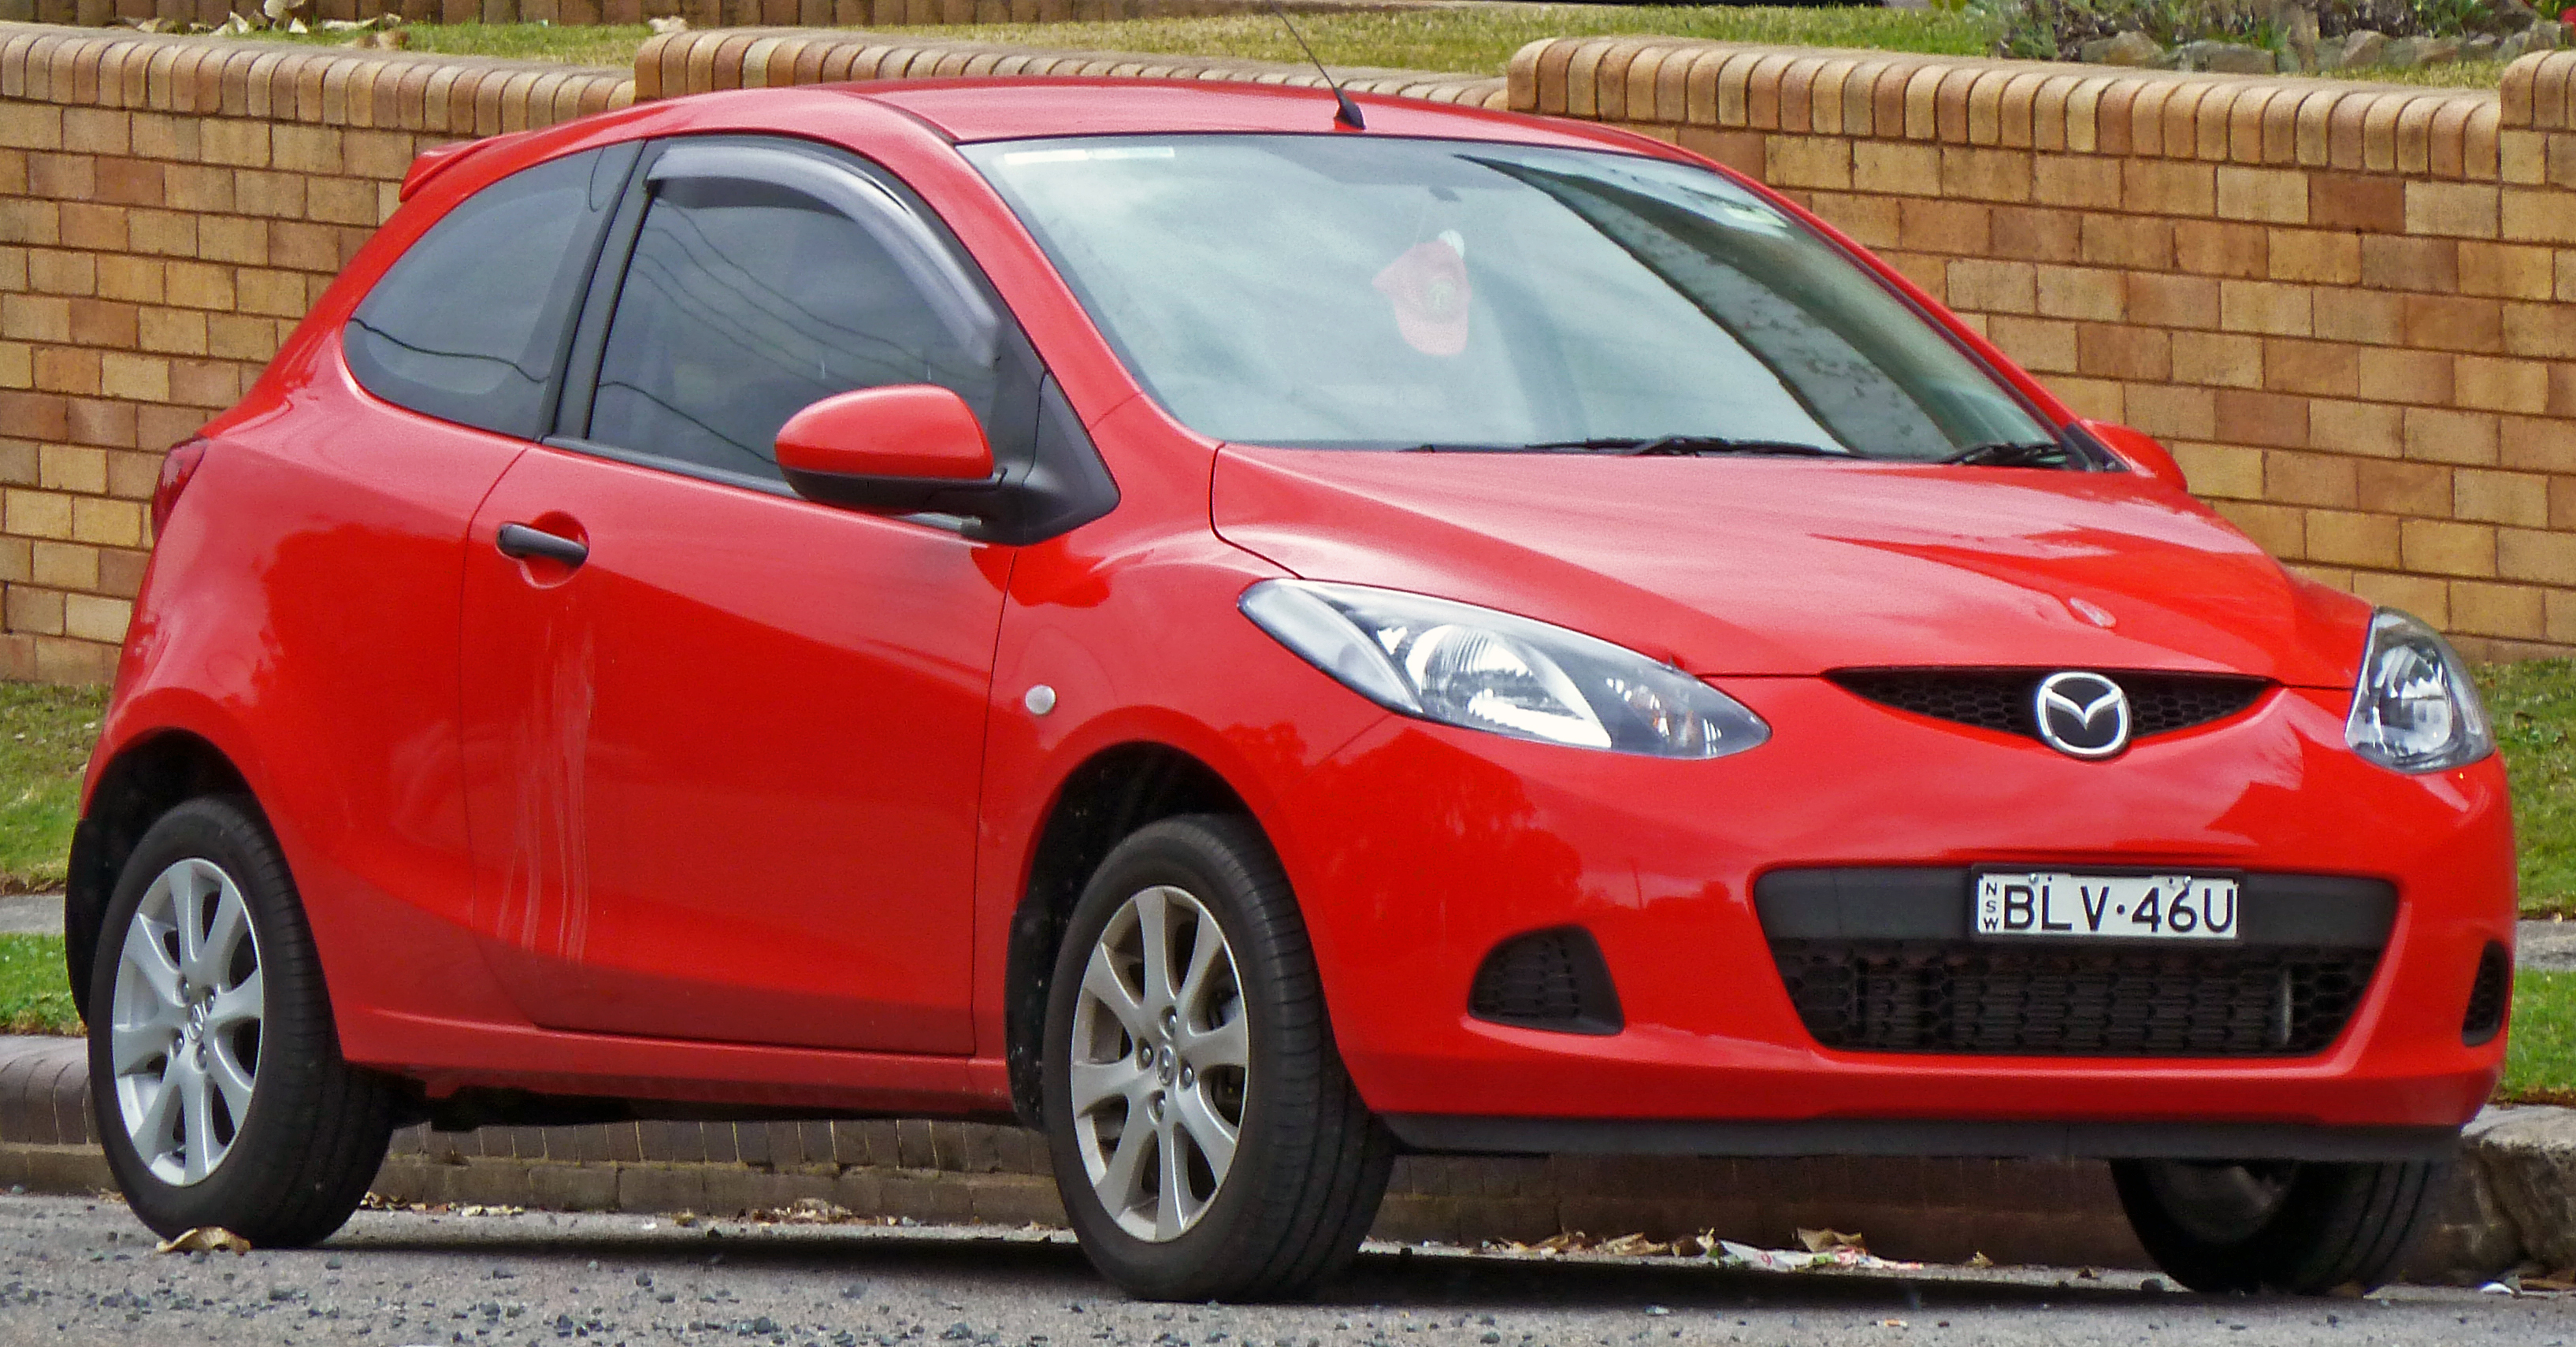 file:2008-2010 mazda 2 (de) maxx 3-door hatchback 01